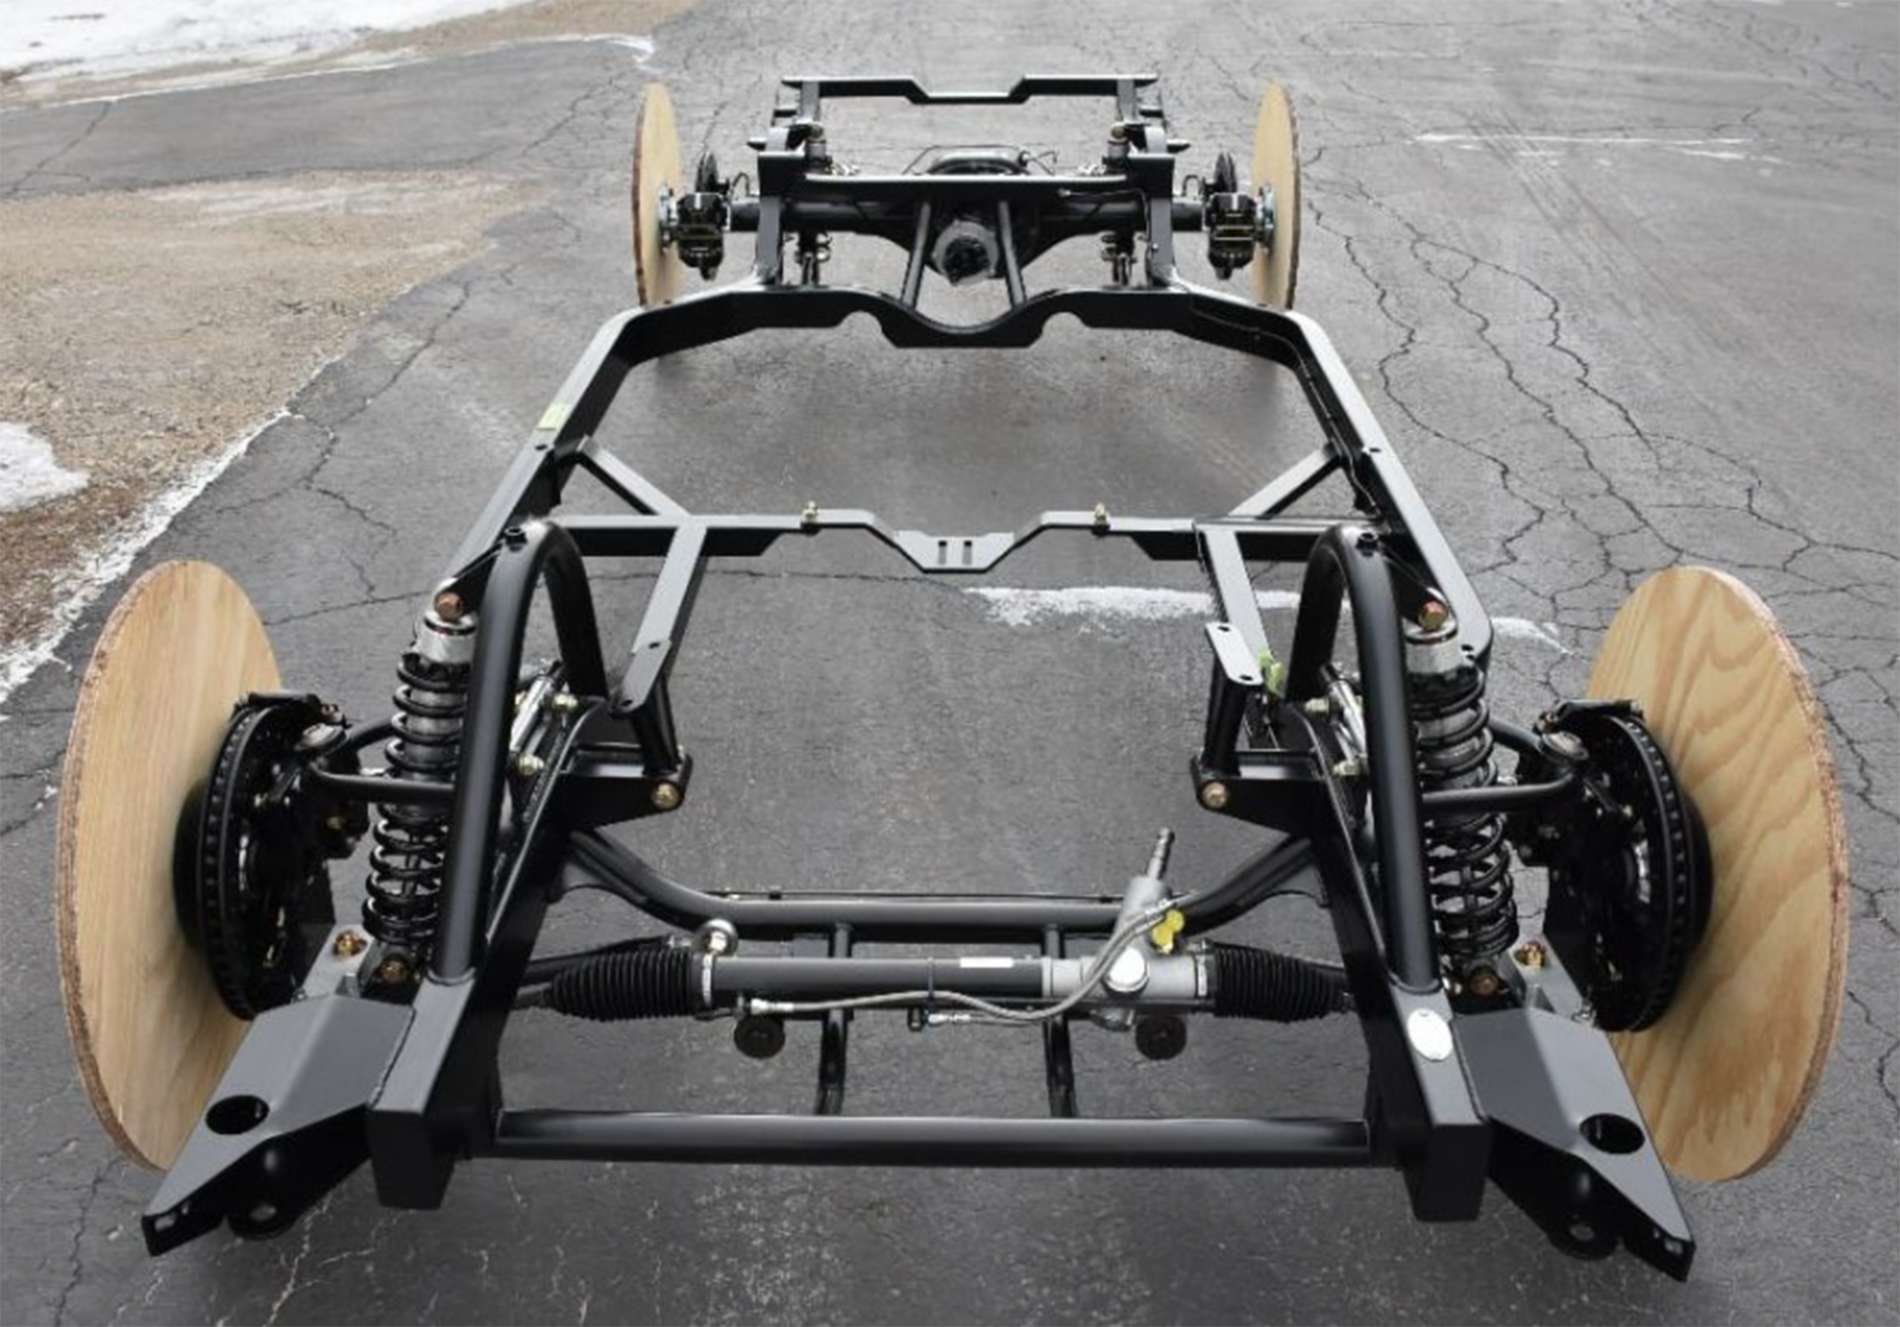 Eliminate Your GM's Chassis Flex With Summit's New Frame